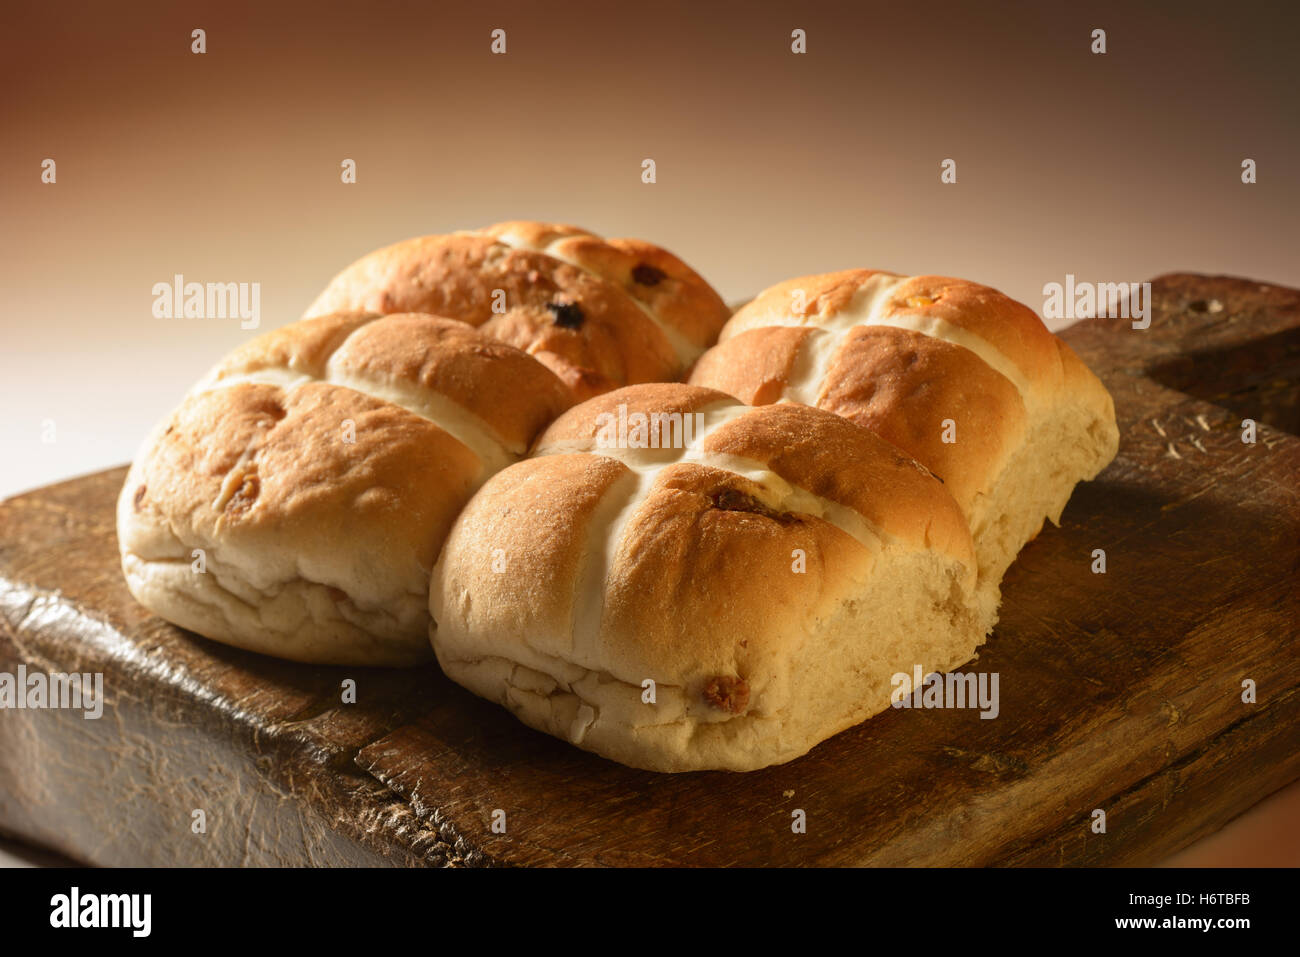 Creatively lit Hot Cross buns on rustic wooden board - Stock Image